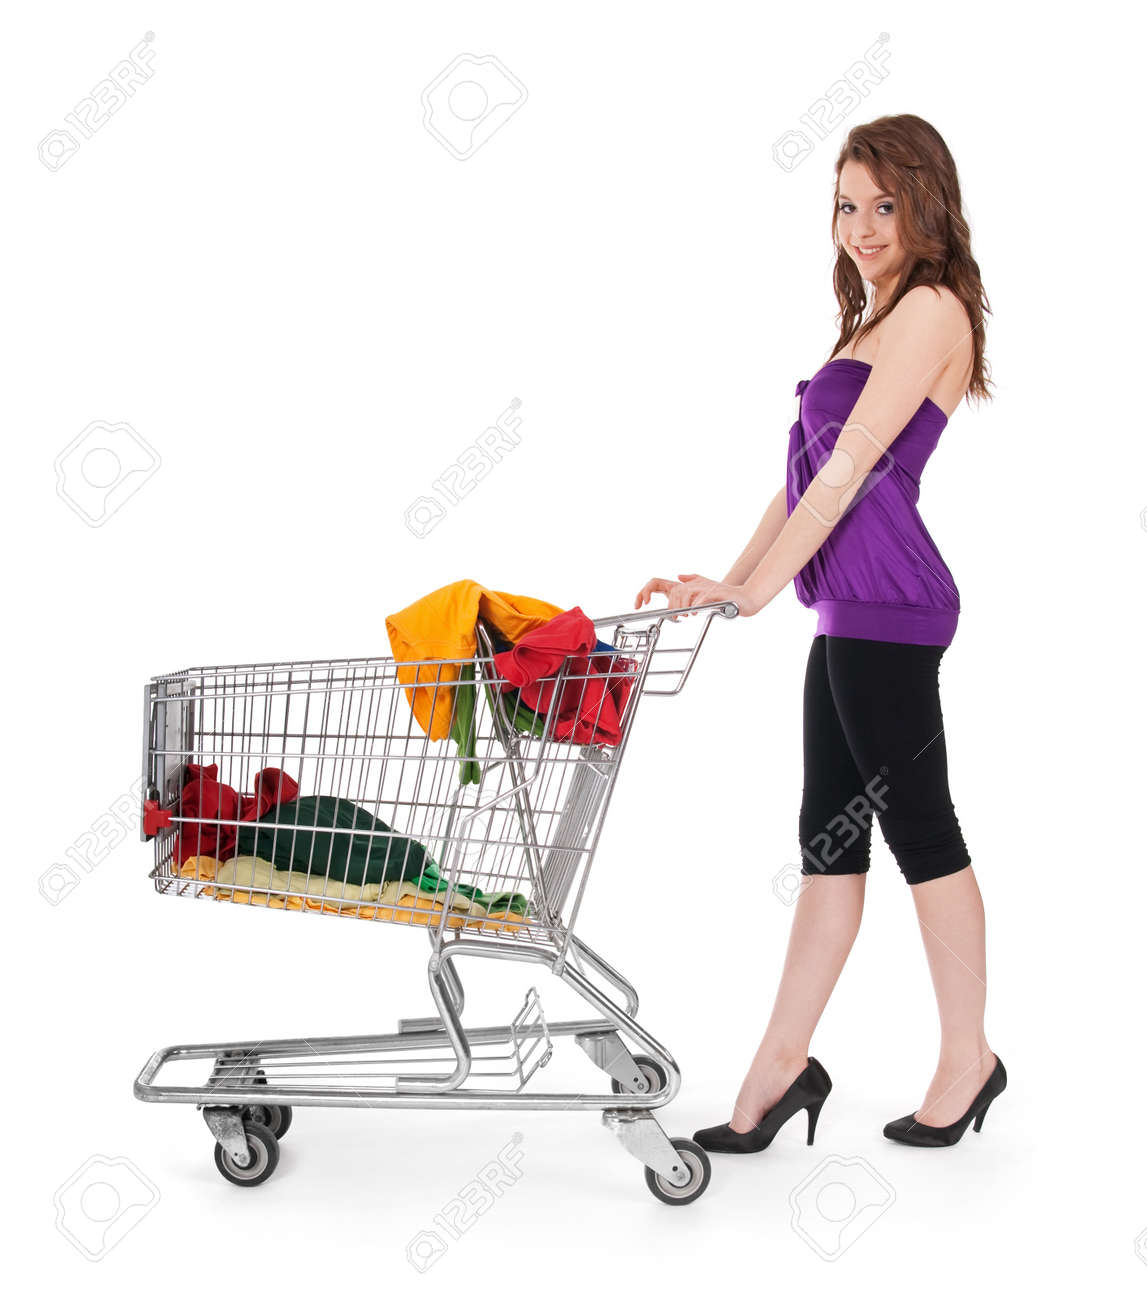 Pretty Girl With Shopping Cart Buying Colorful Clothing, Isolated ...